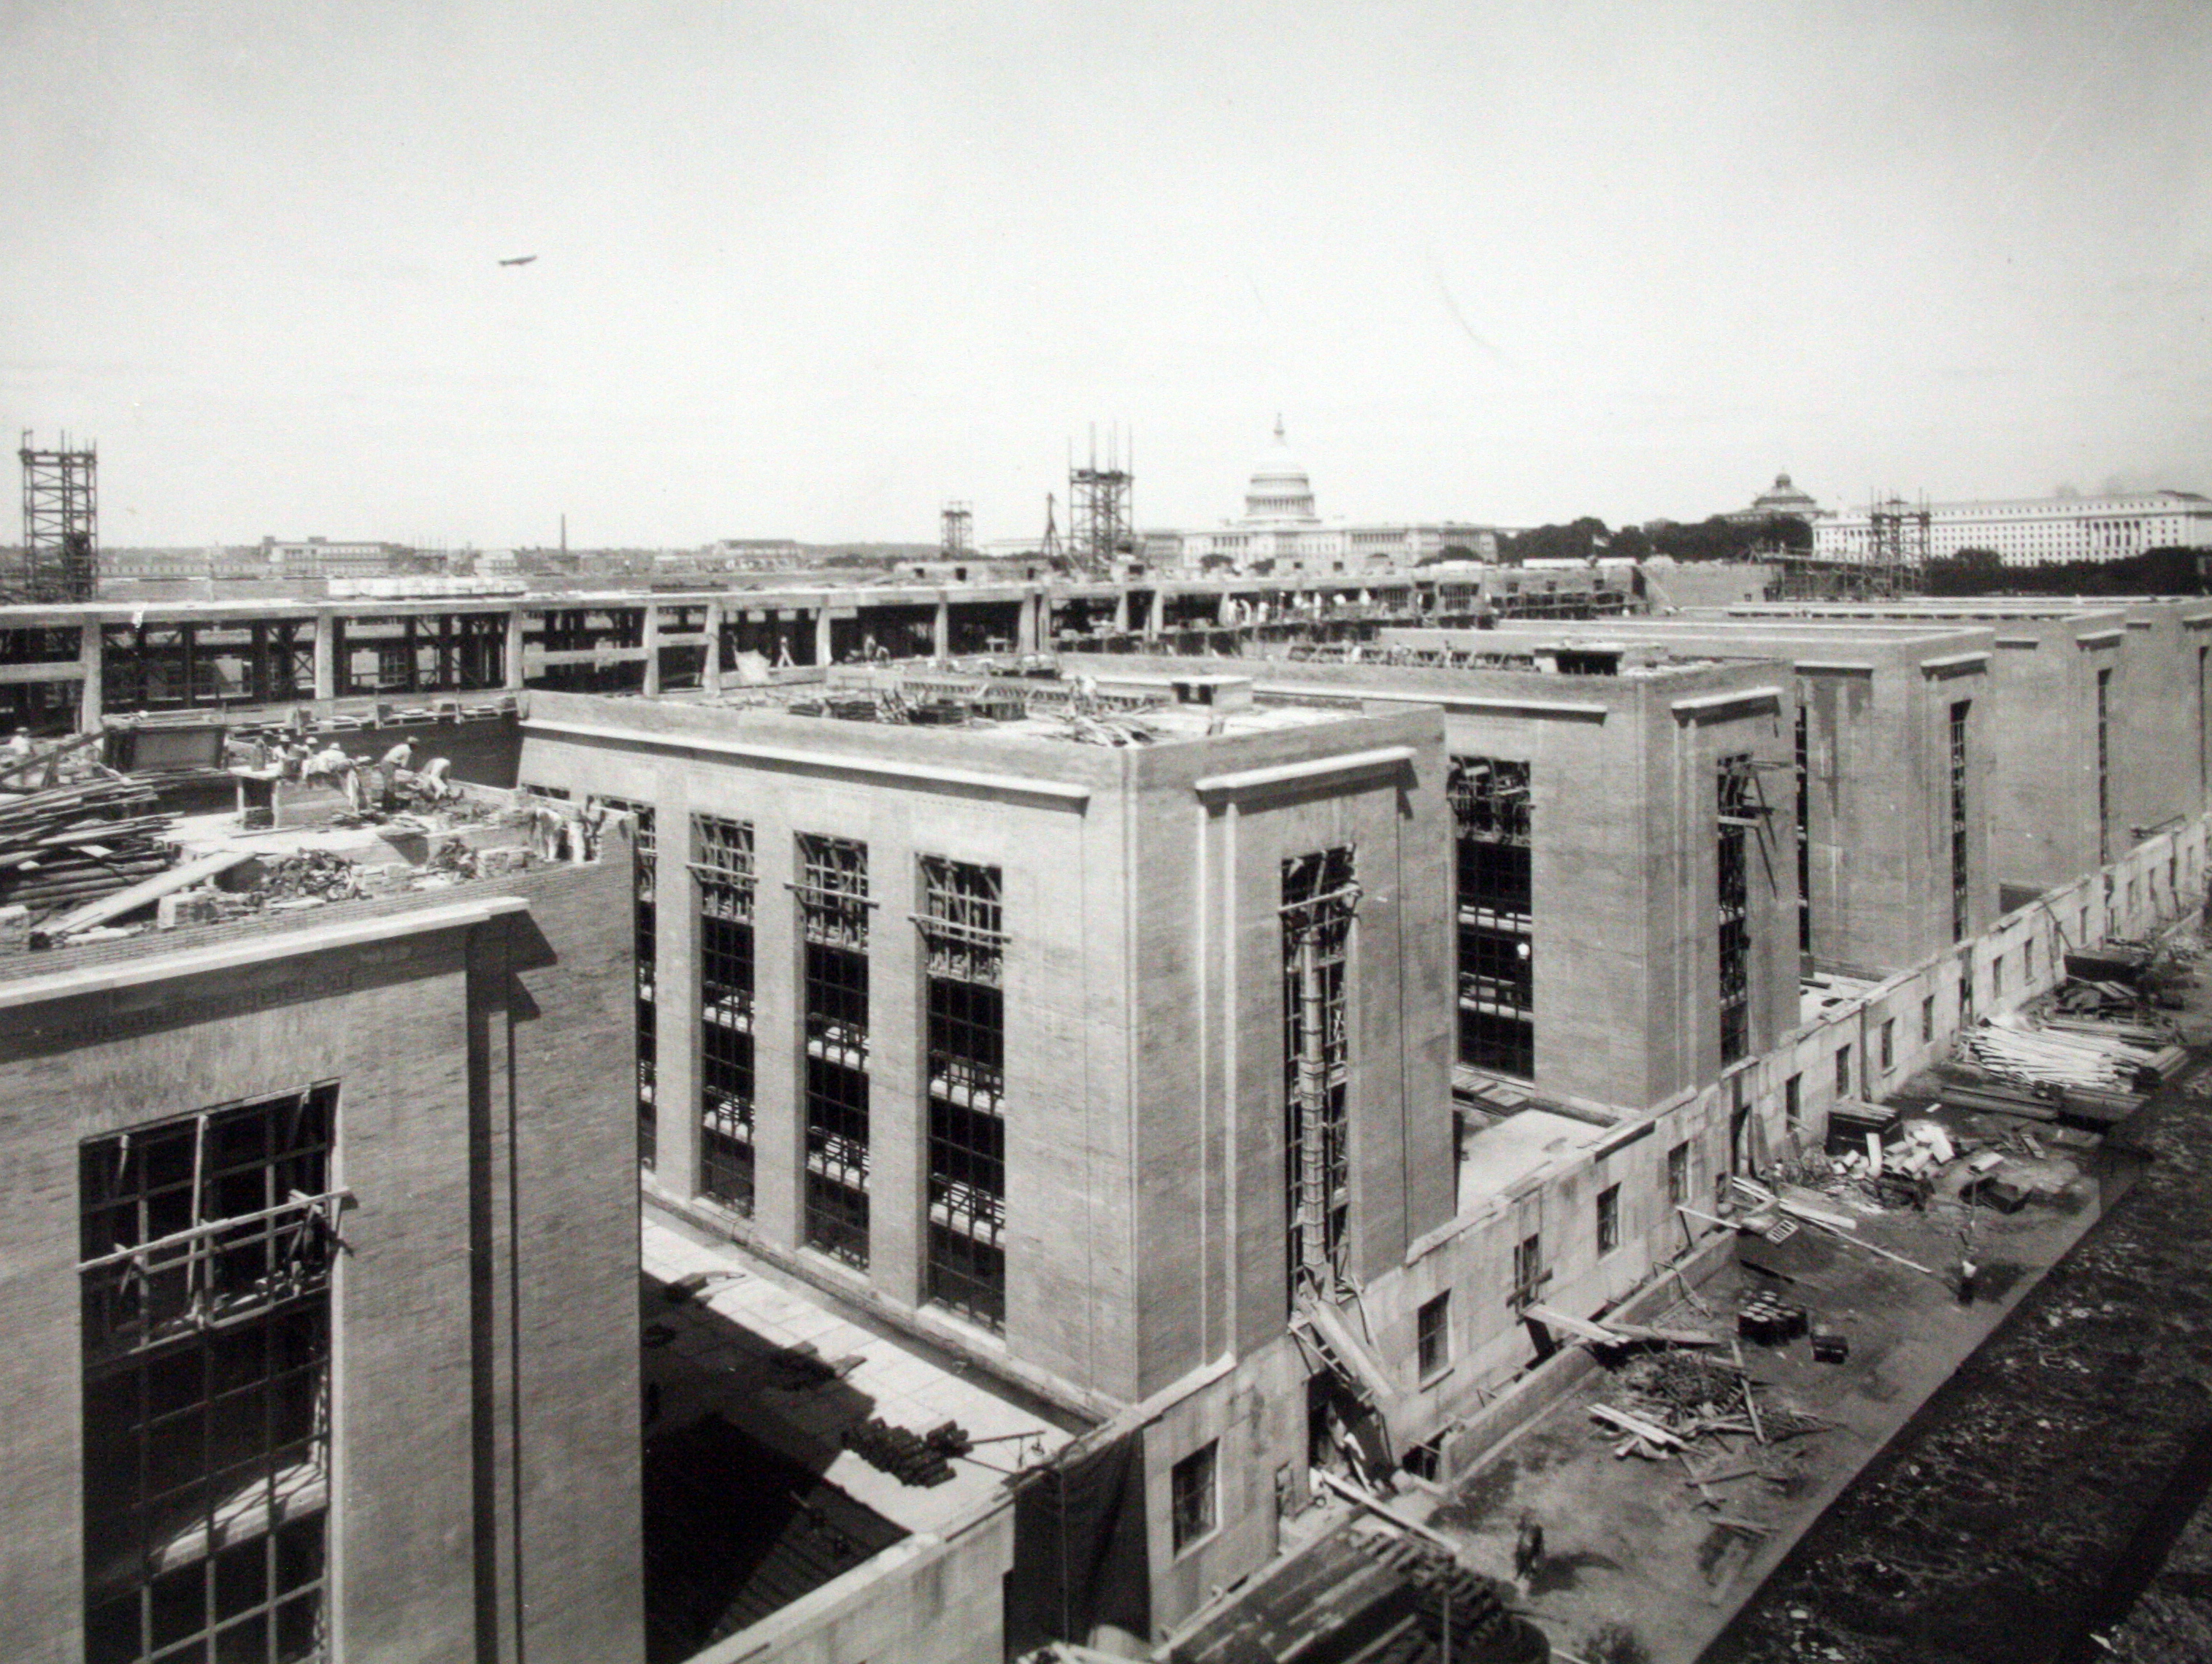 Construction of a long central corridor from which six short, narrow wings project on both the north and south sides, c. 1939.